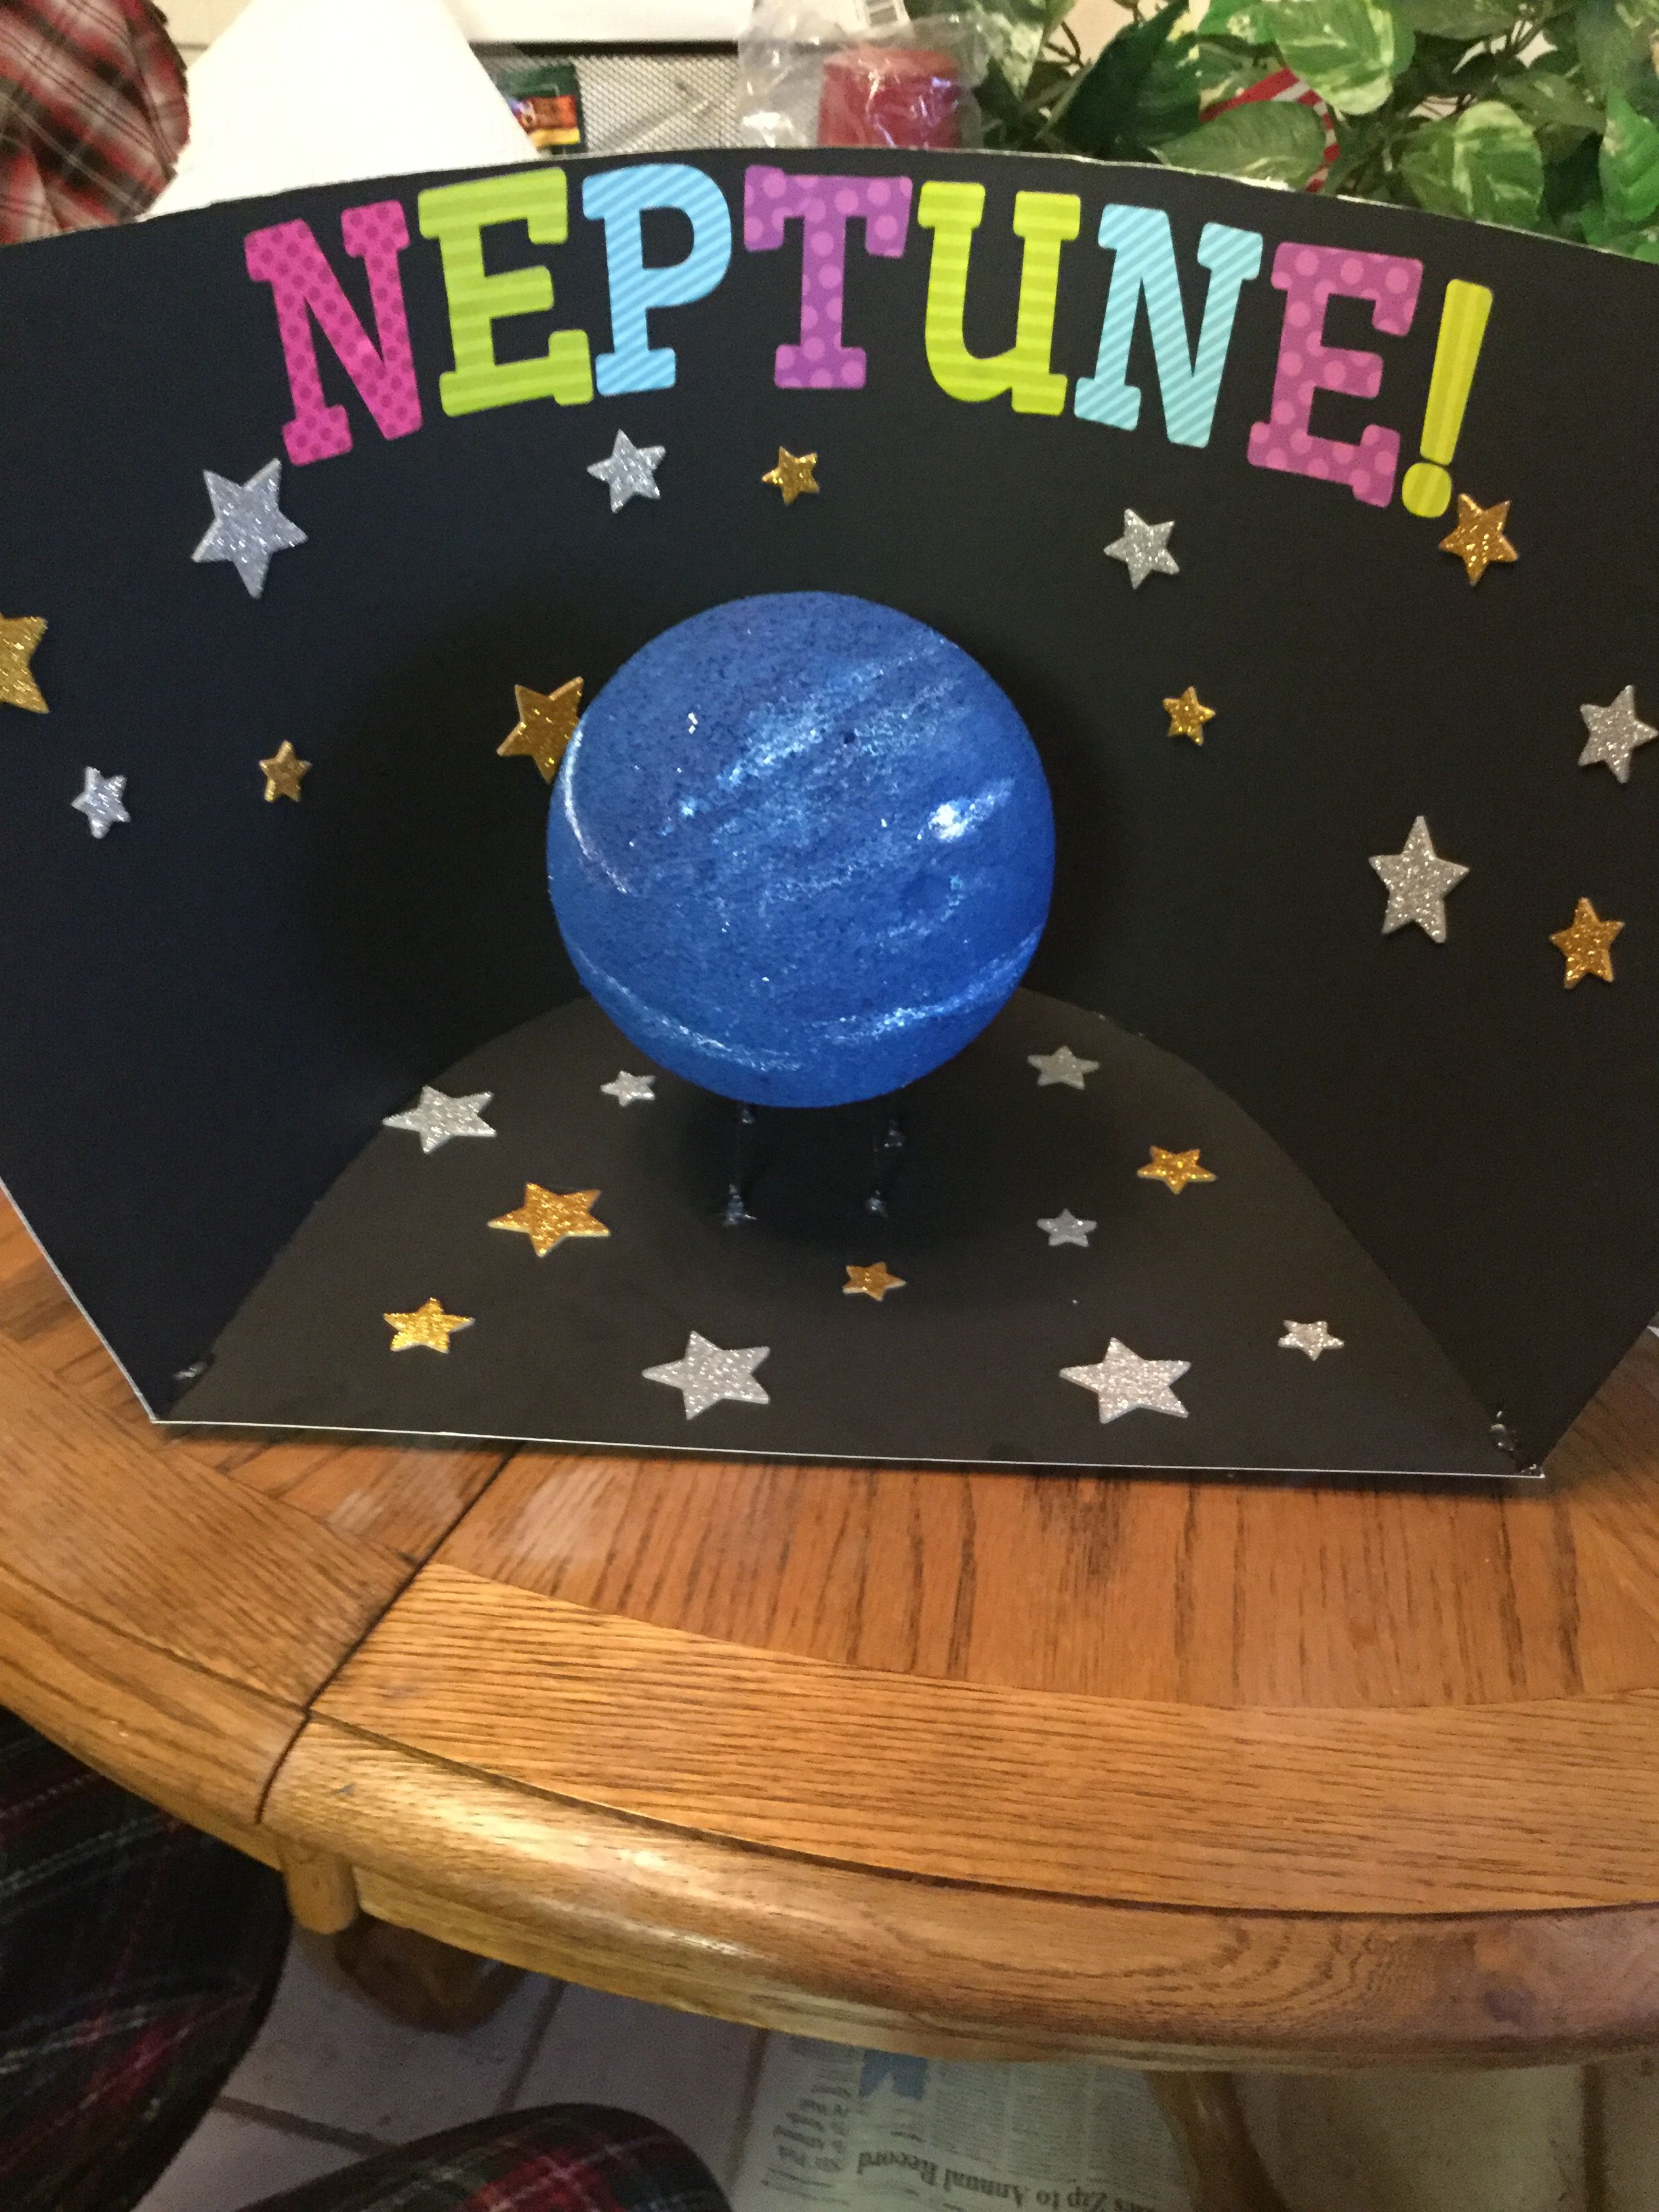 The finished product of my Neptune science project ...